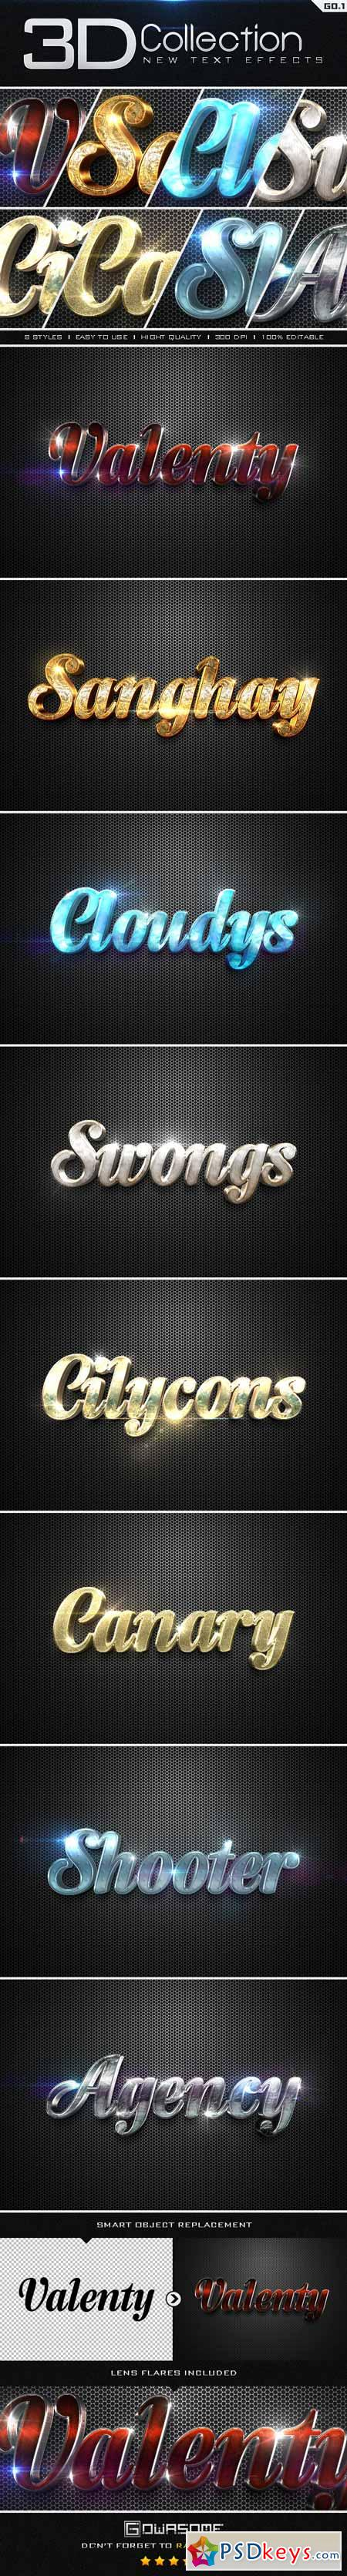 New 3D Collection Text Effects GO.1 9561348